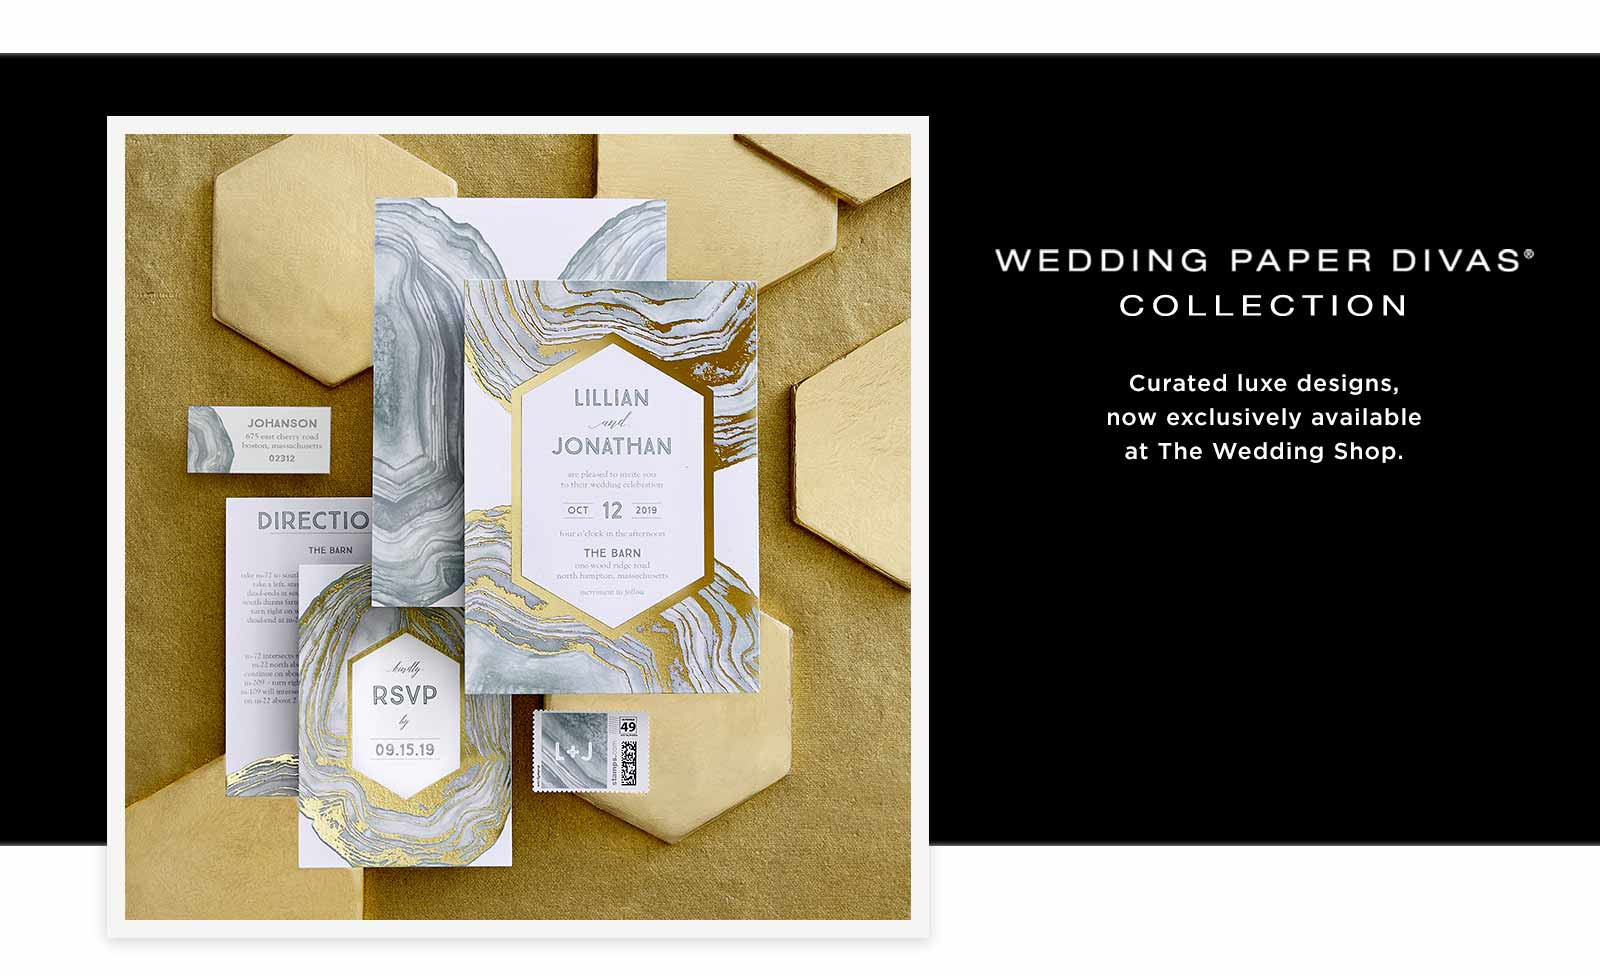 Wedding Diva Invitations: The Wedding Shop